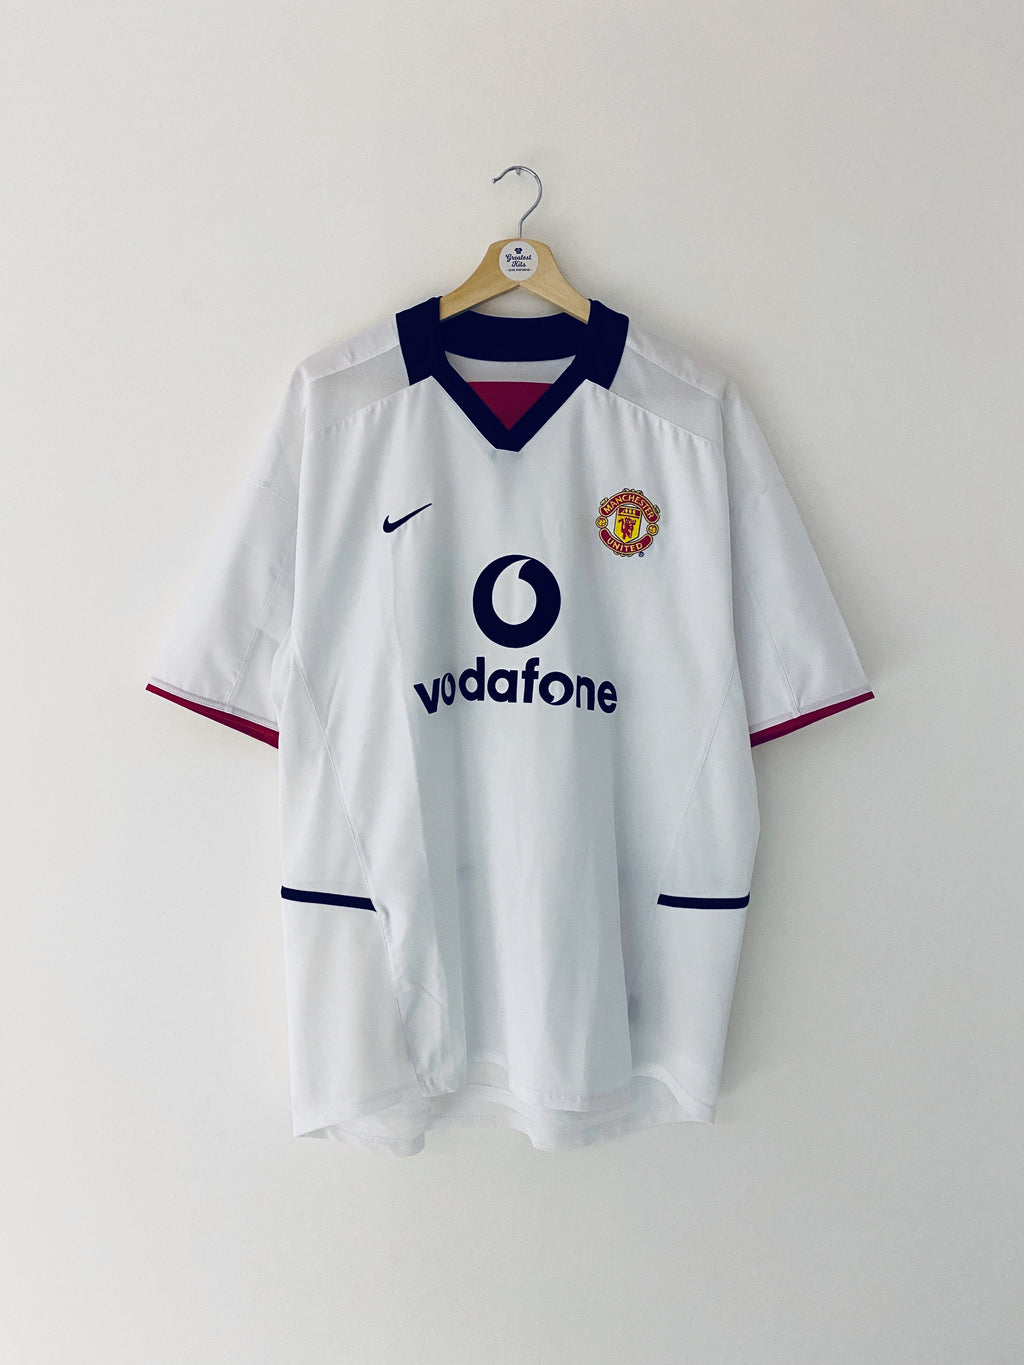 2002/03 Manchester United Away Shirt (XL) 9/10